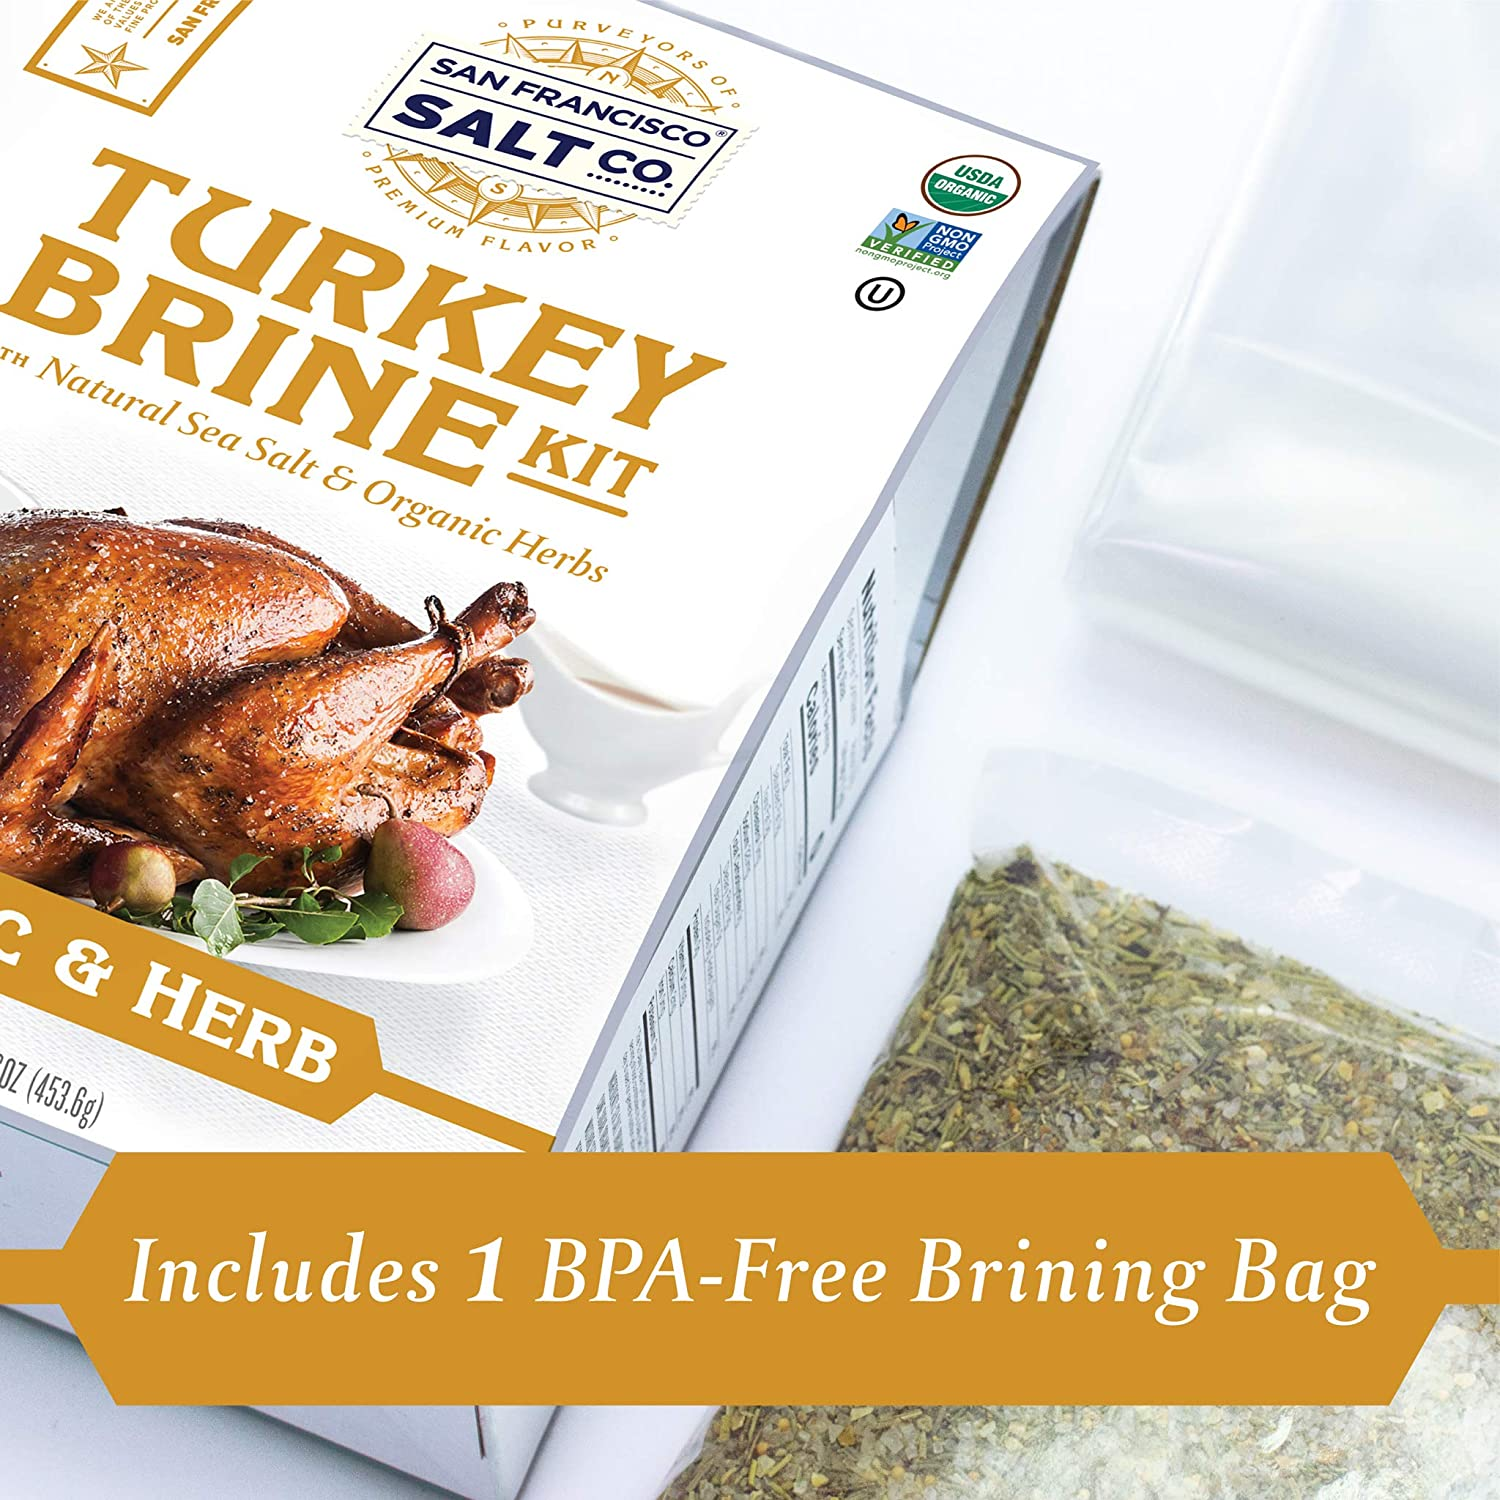 Organic Garlic & Herb Turkey Brine Kit - San Francisco Salt Company